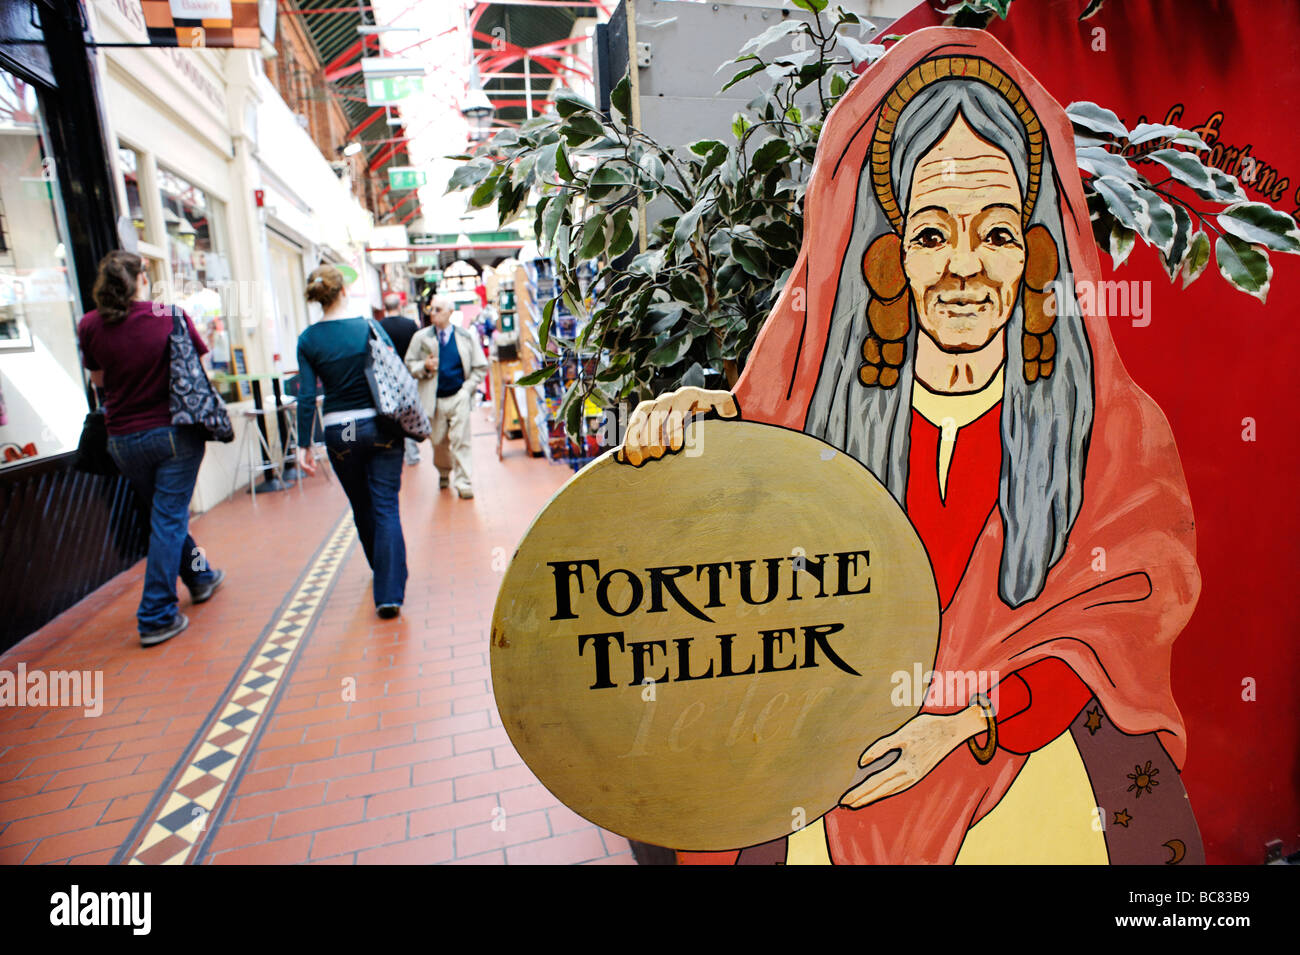 Fortune teller stall in South City Market aka George s Street Arcade in Dublin Republic of Ireland - Stock Image